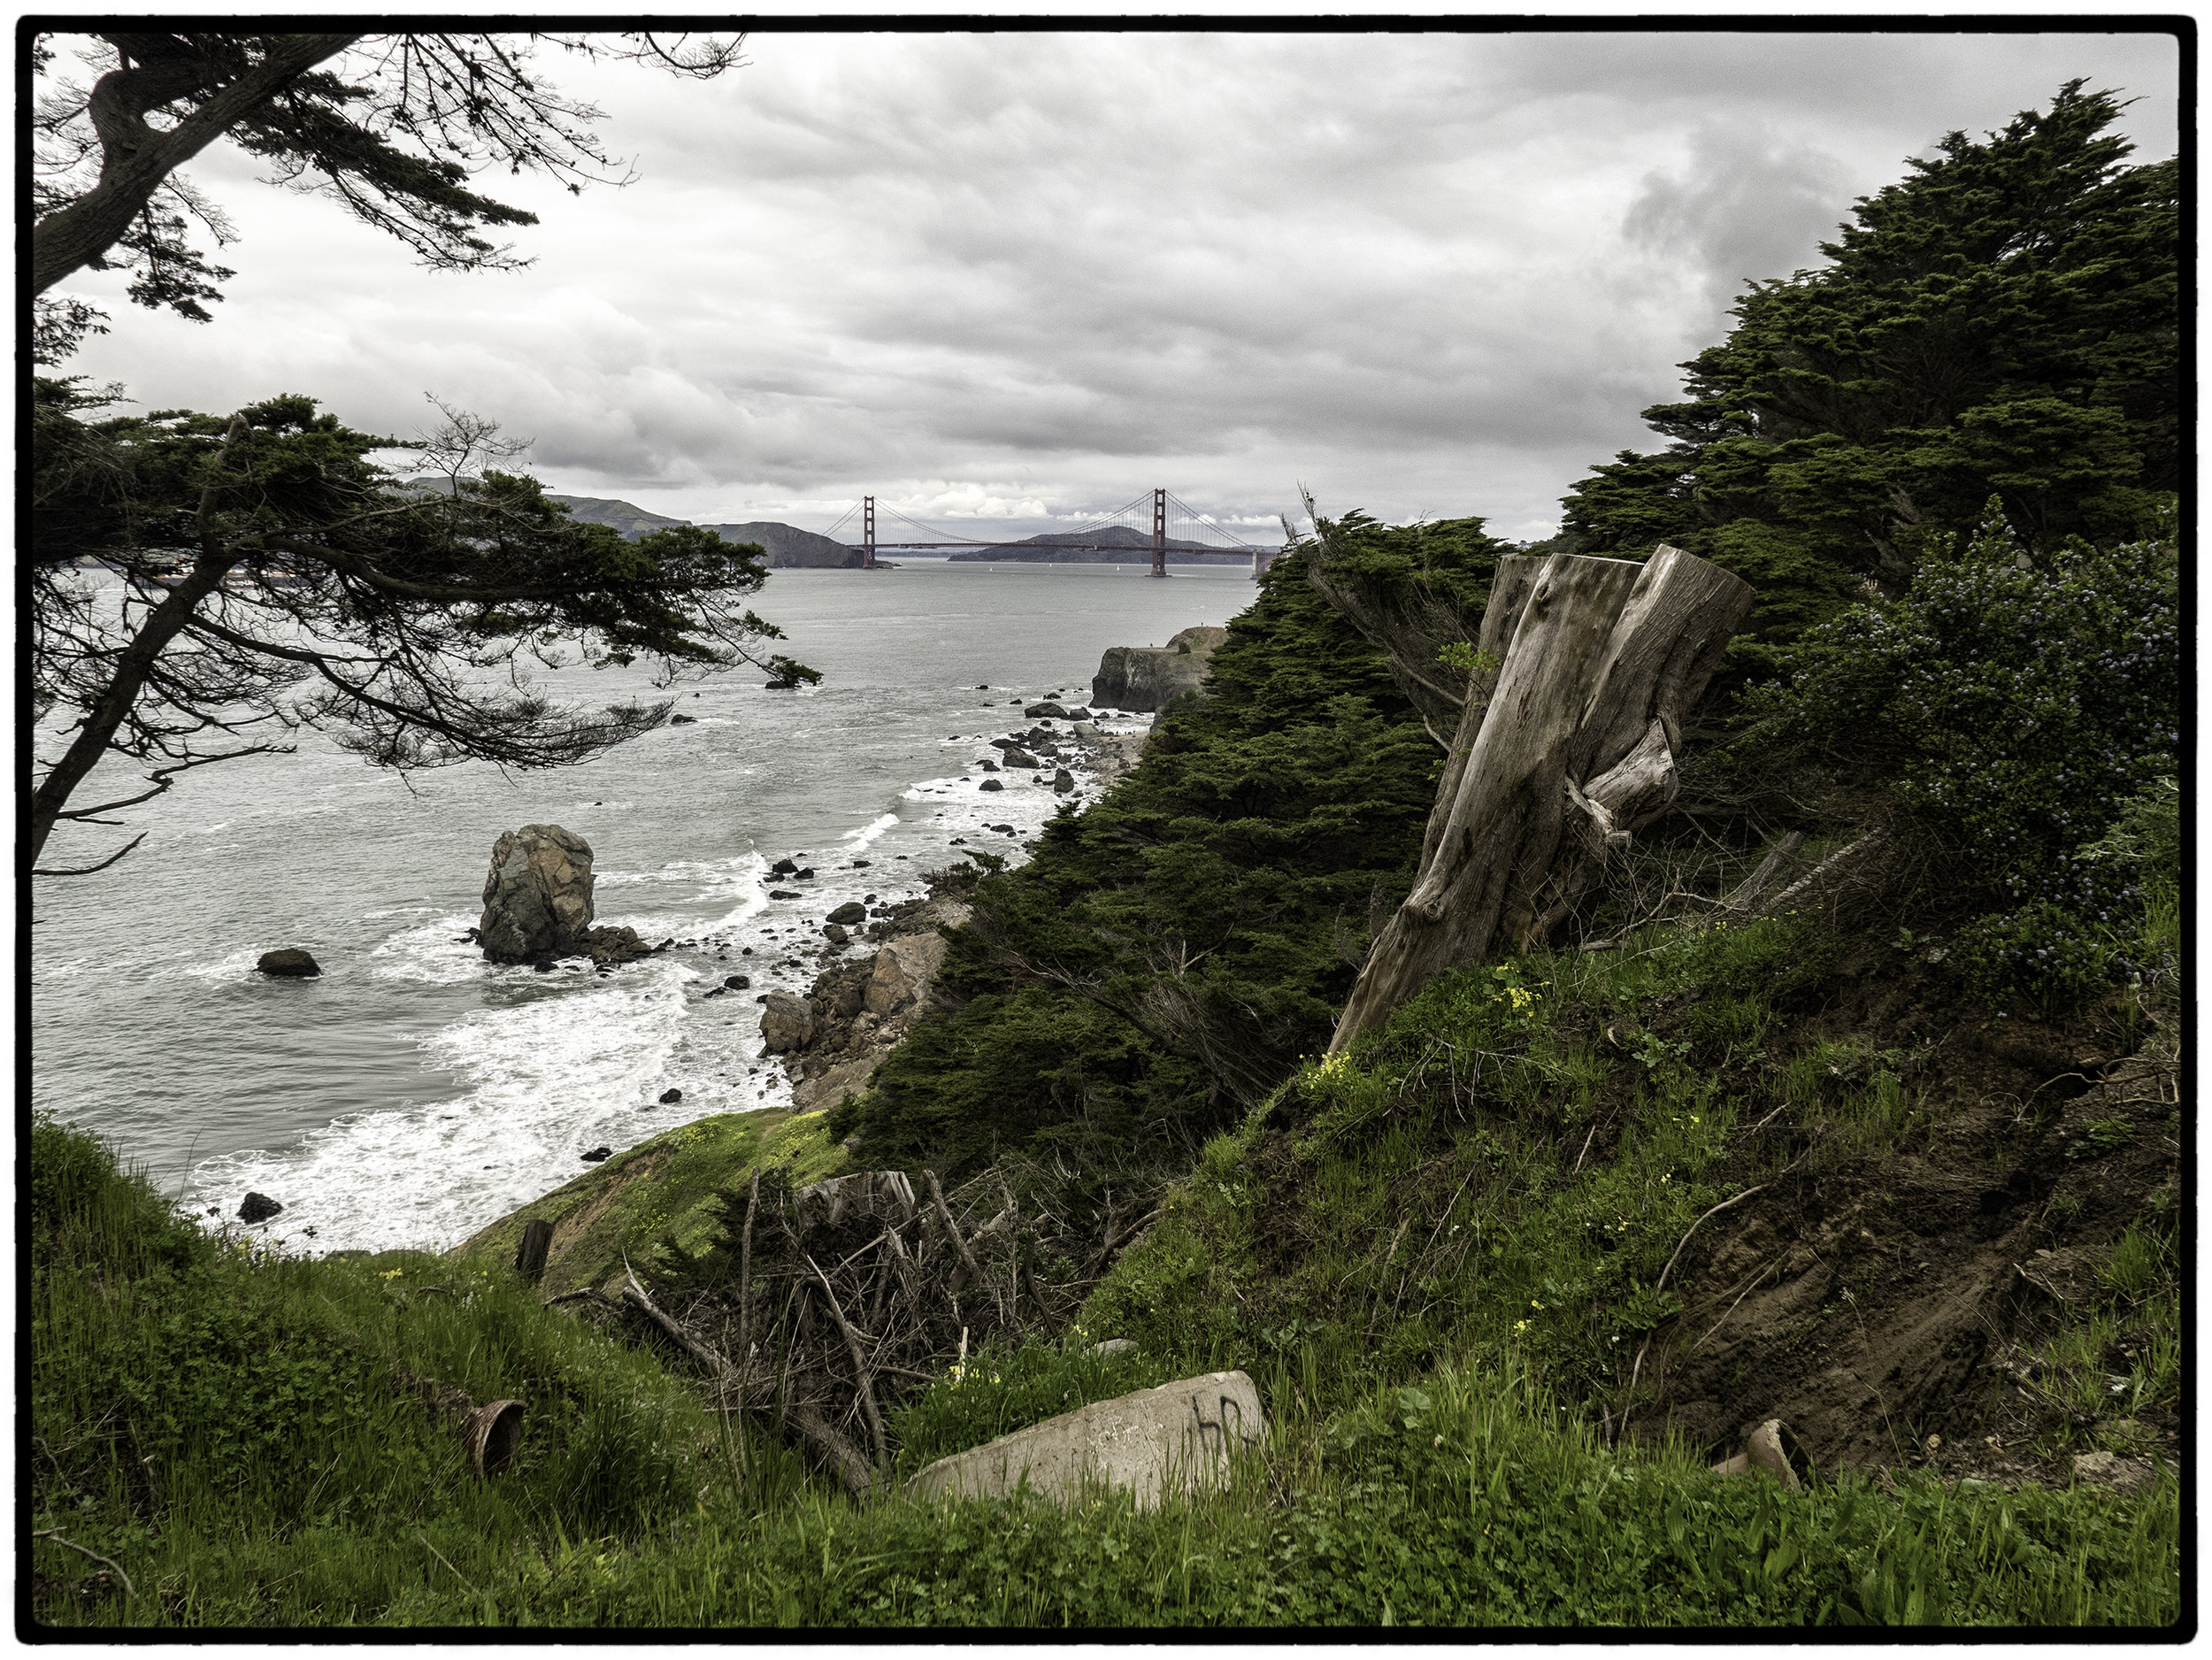 From Lands End Trail